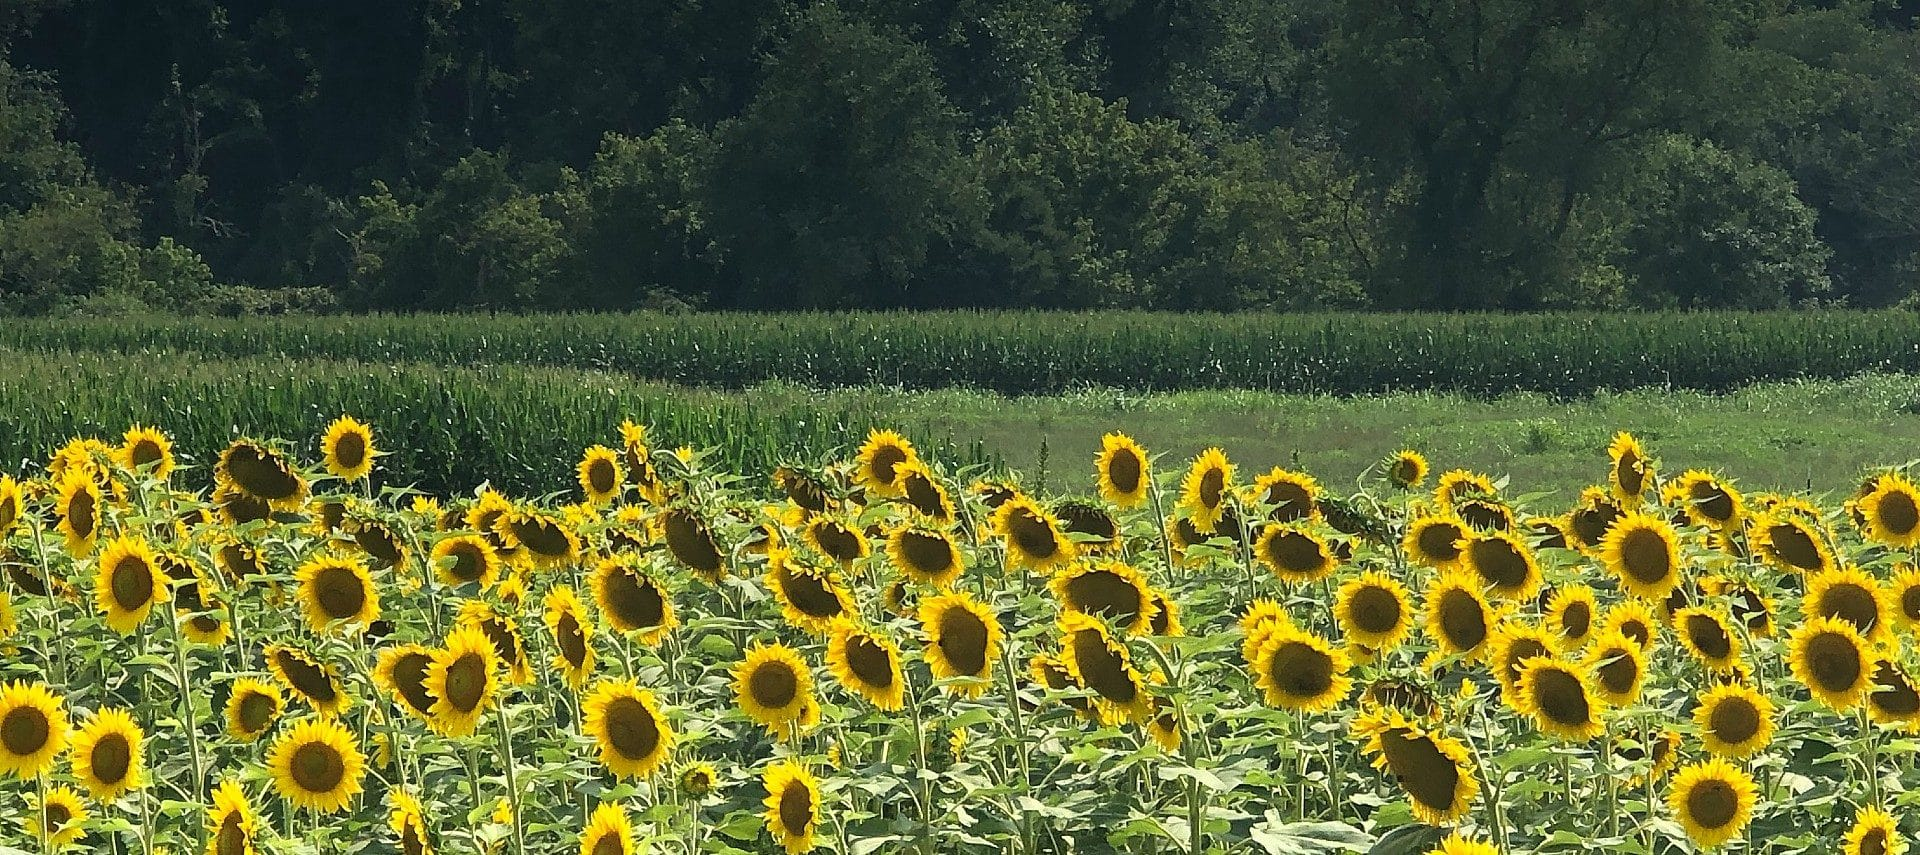 A field of bright yellow sunflowers in front of tall green grass and a forest of trees